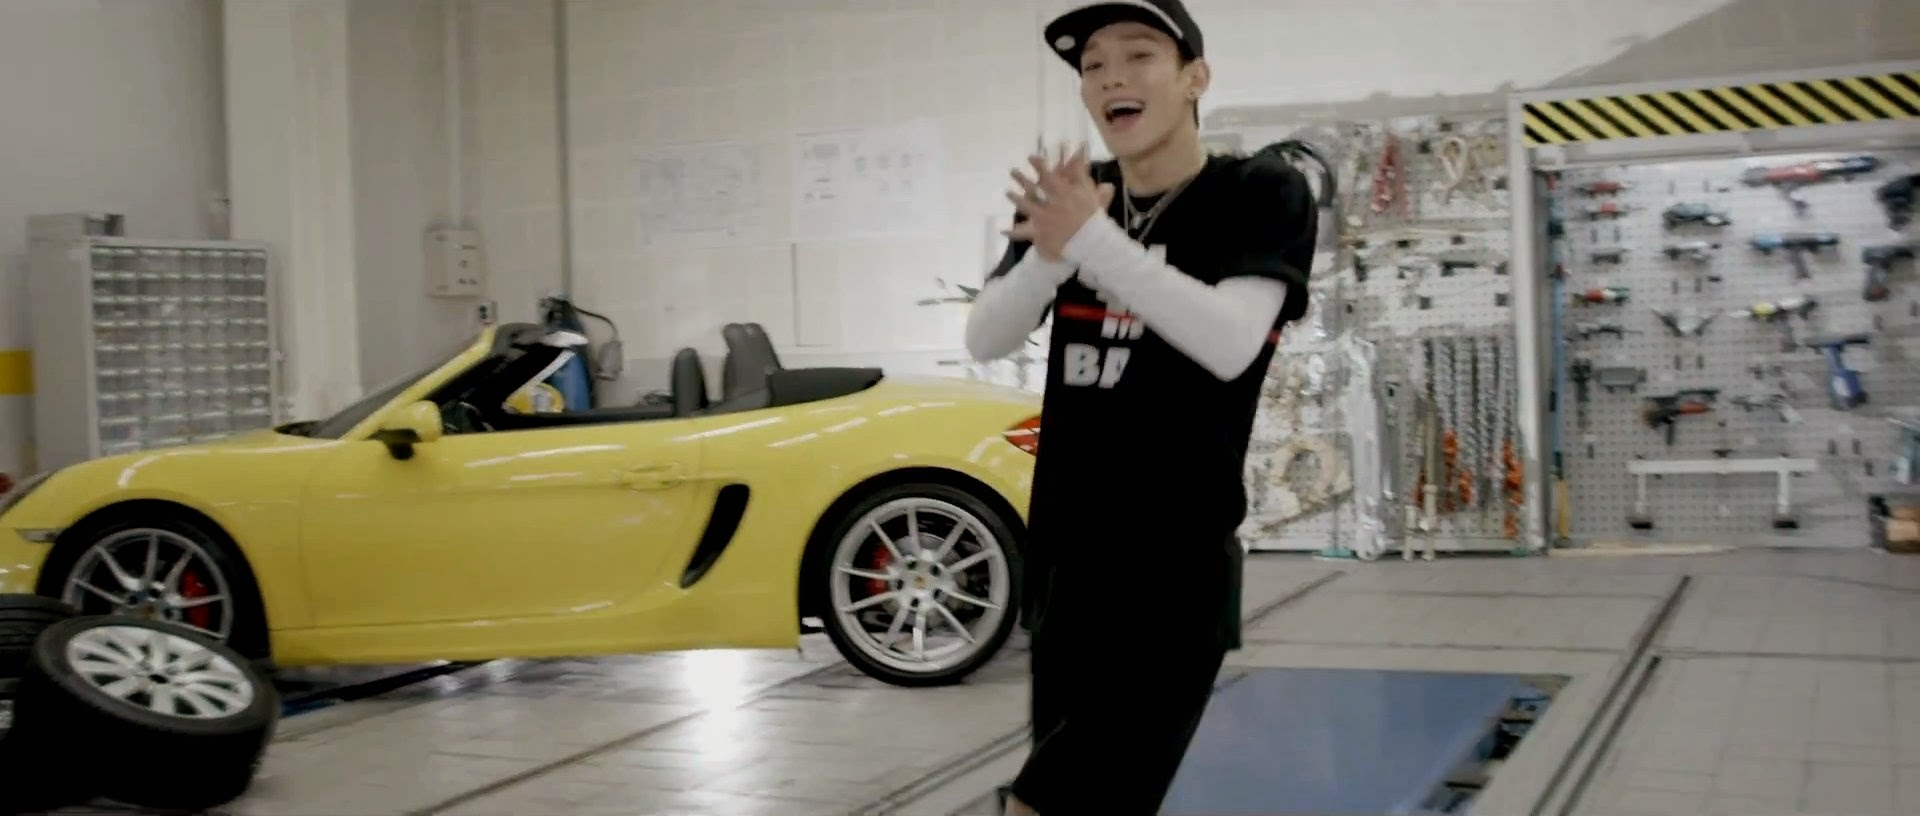 EXO's Chen in Call Me Baby